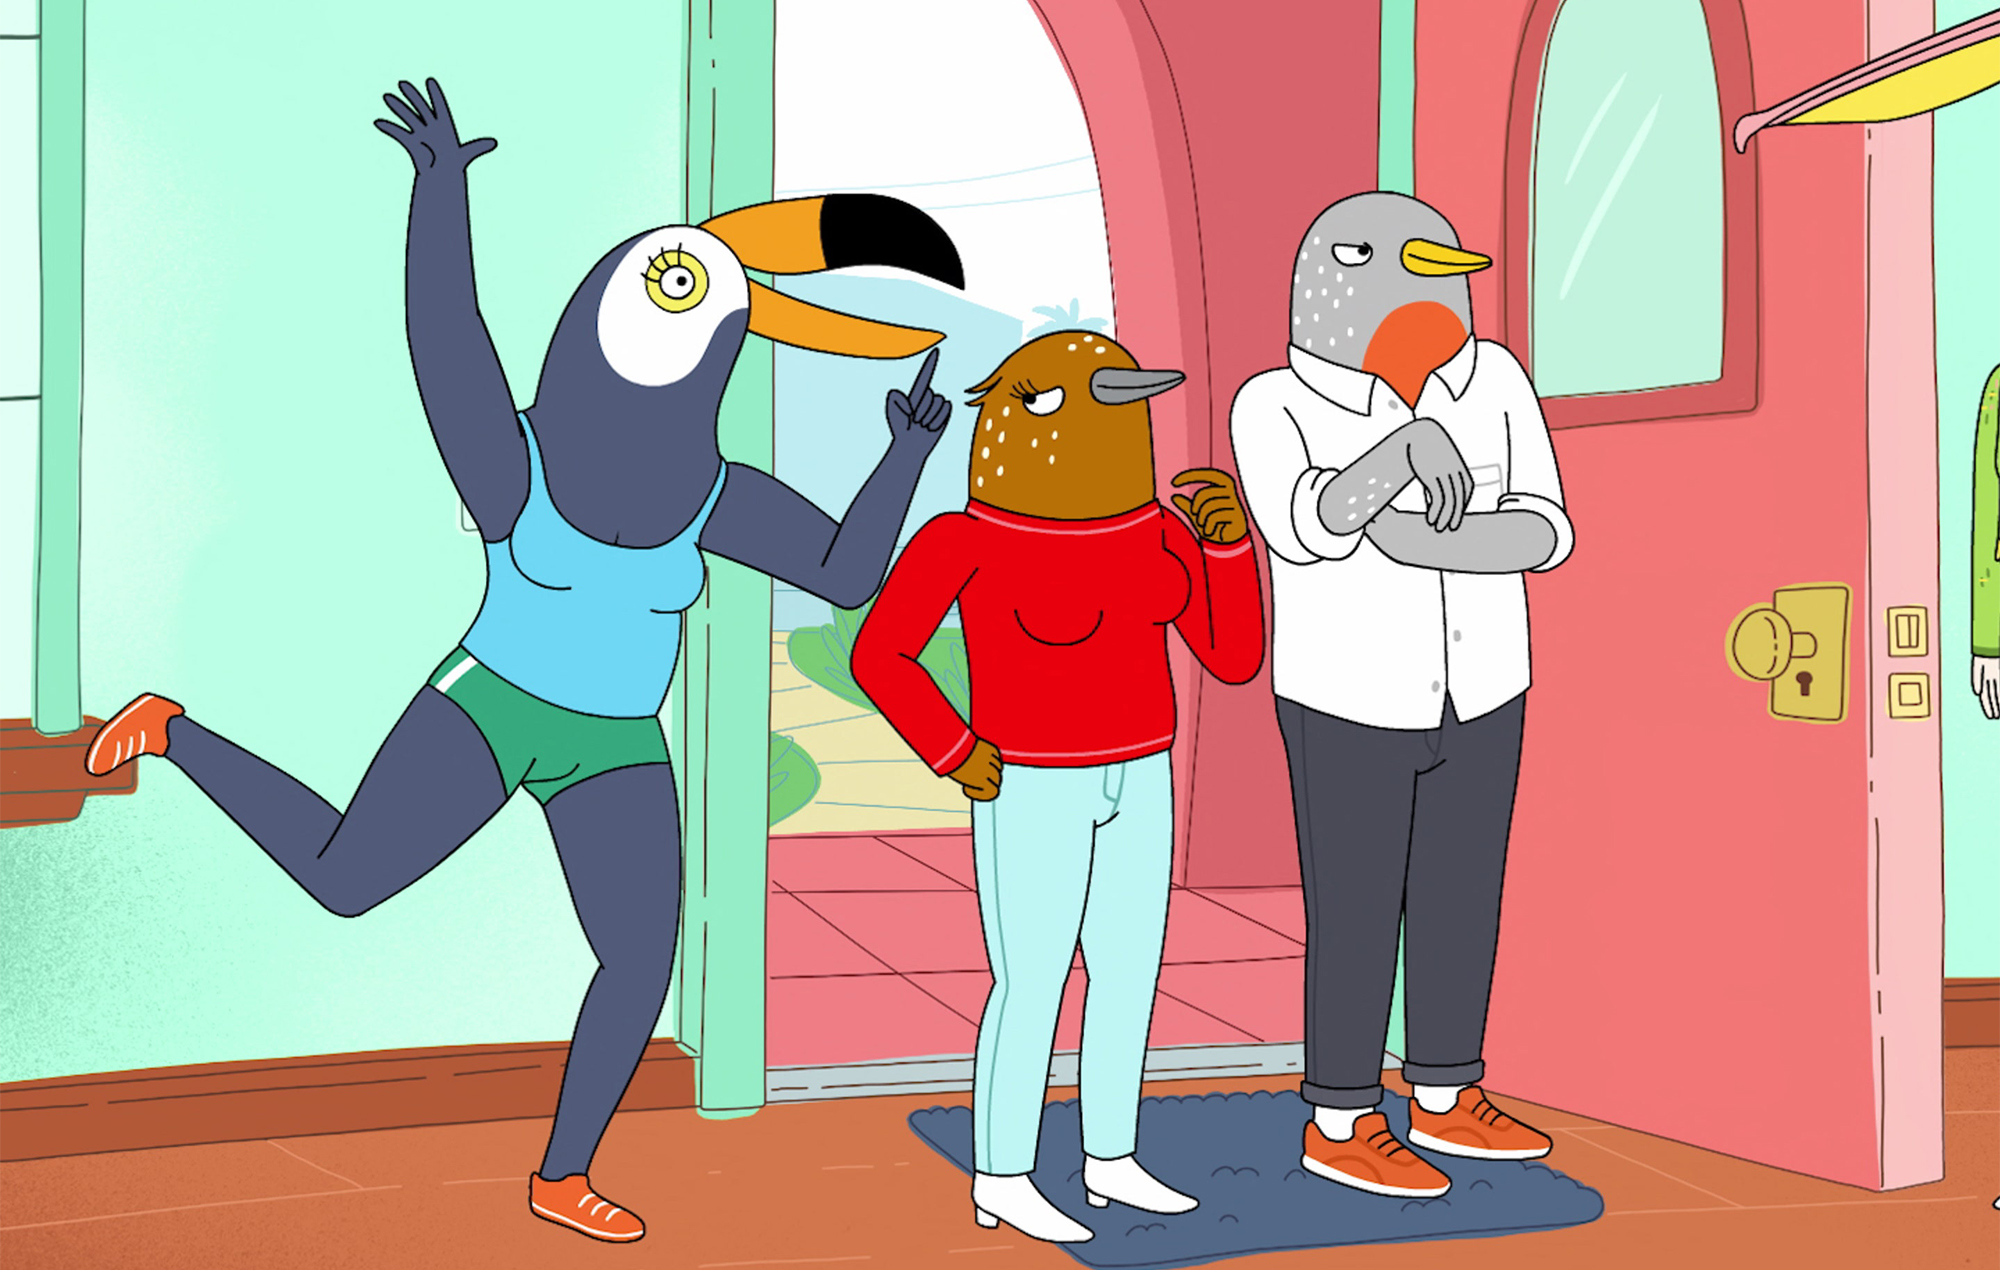 Watch the 'Tuca and Bertie' season 2 premiere on YouTube